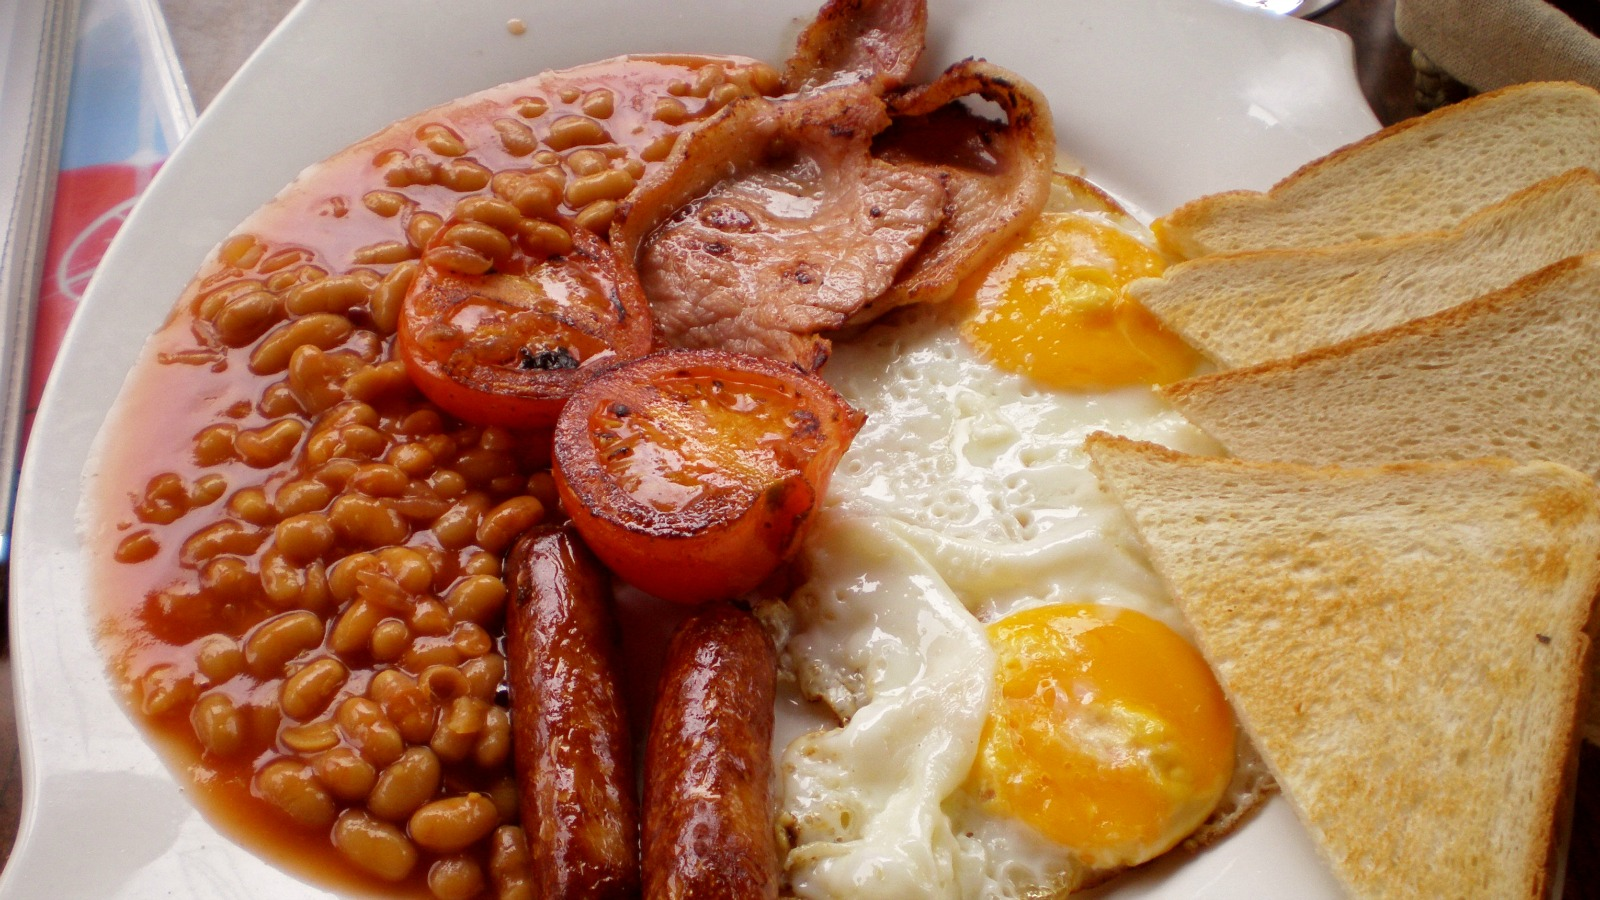 Cameron To Get His Eu Deal Over English Breakfast